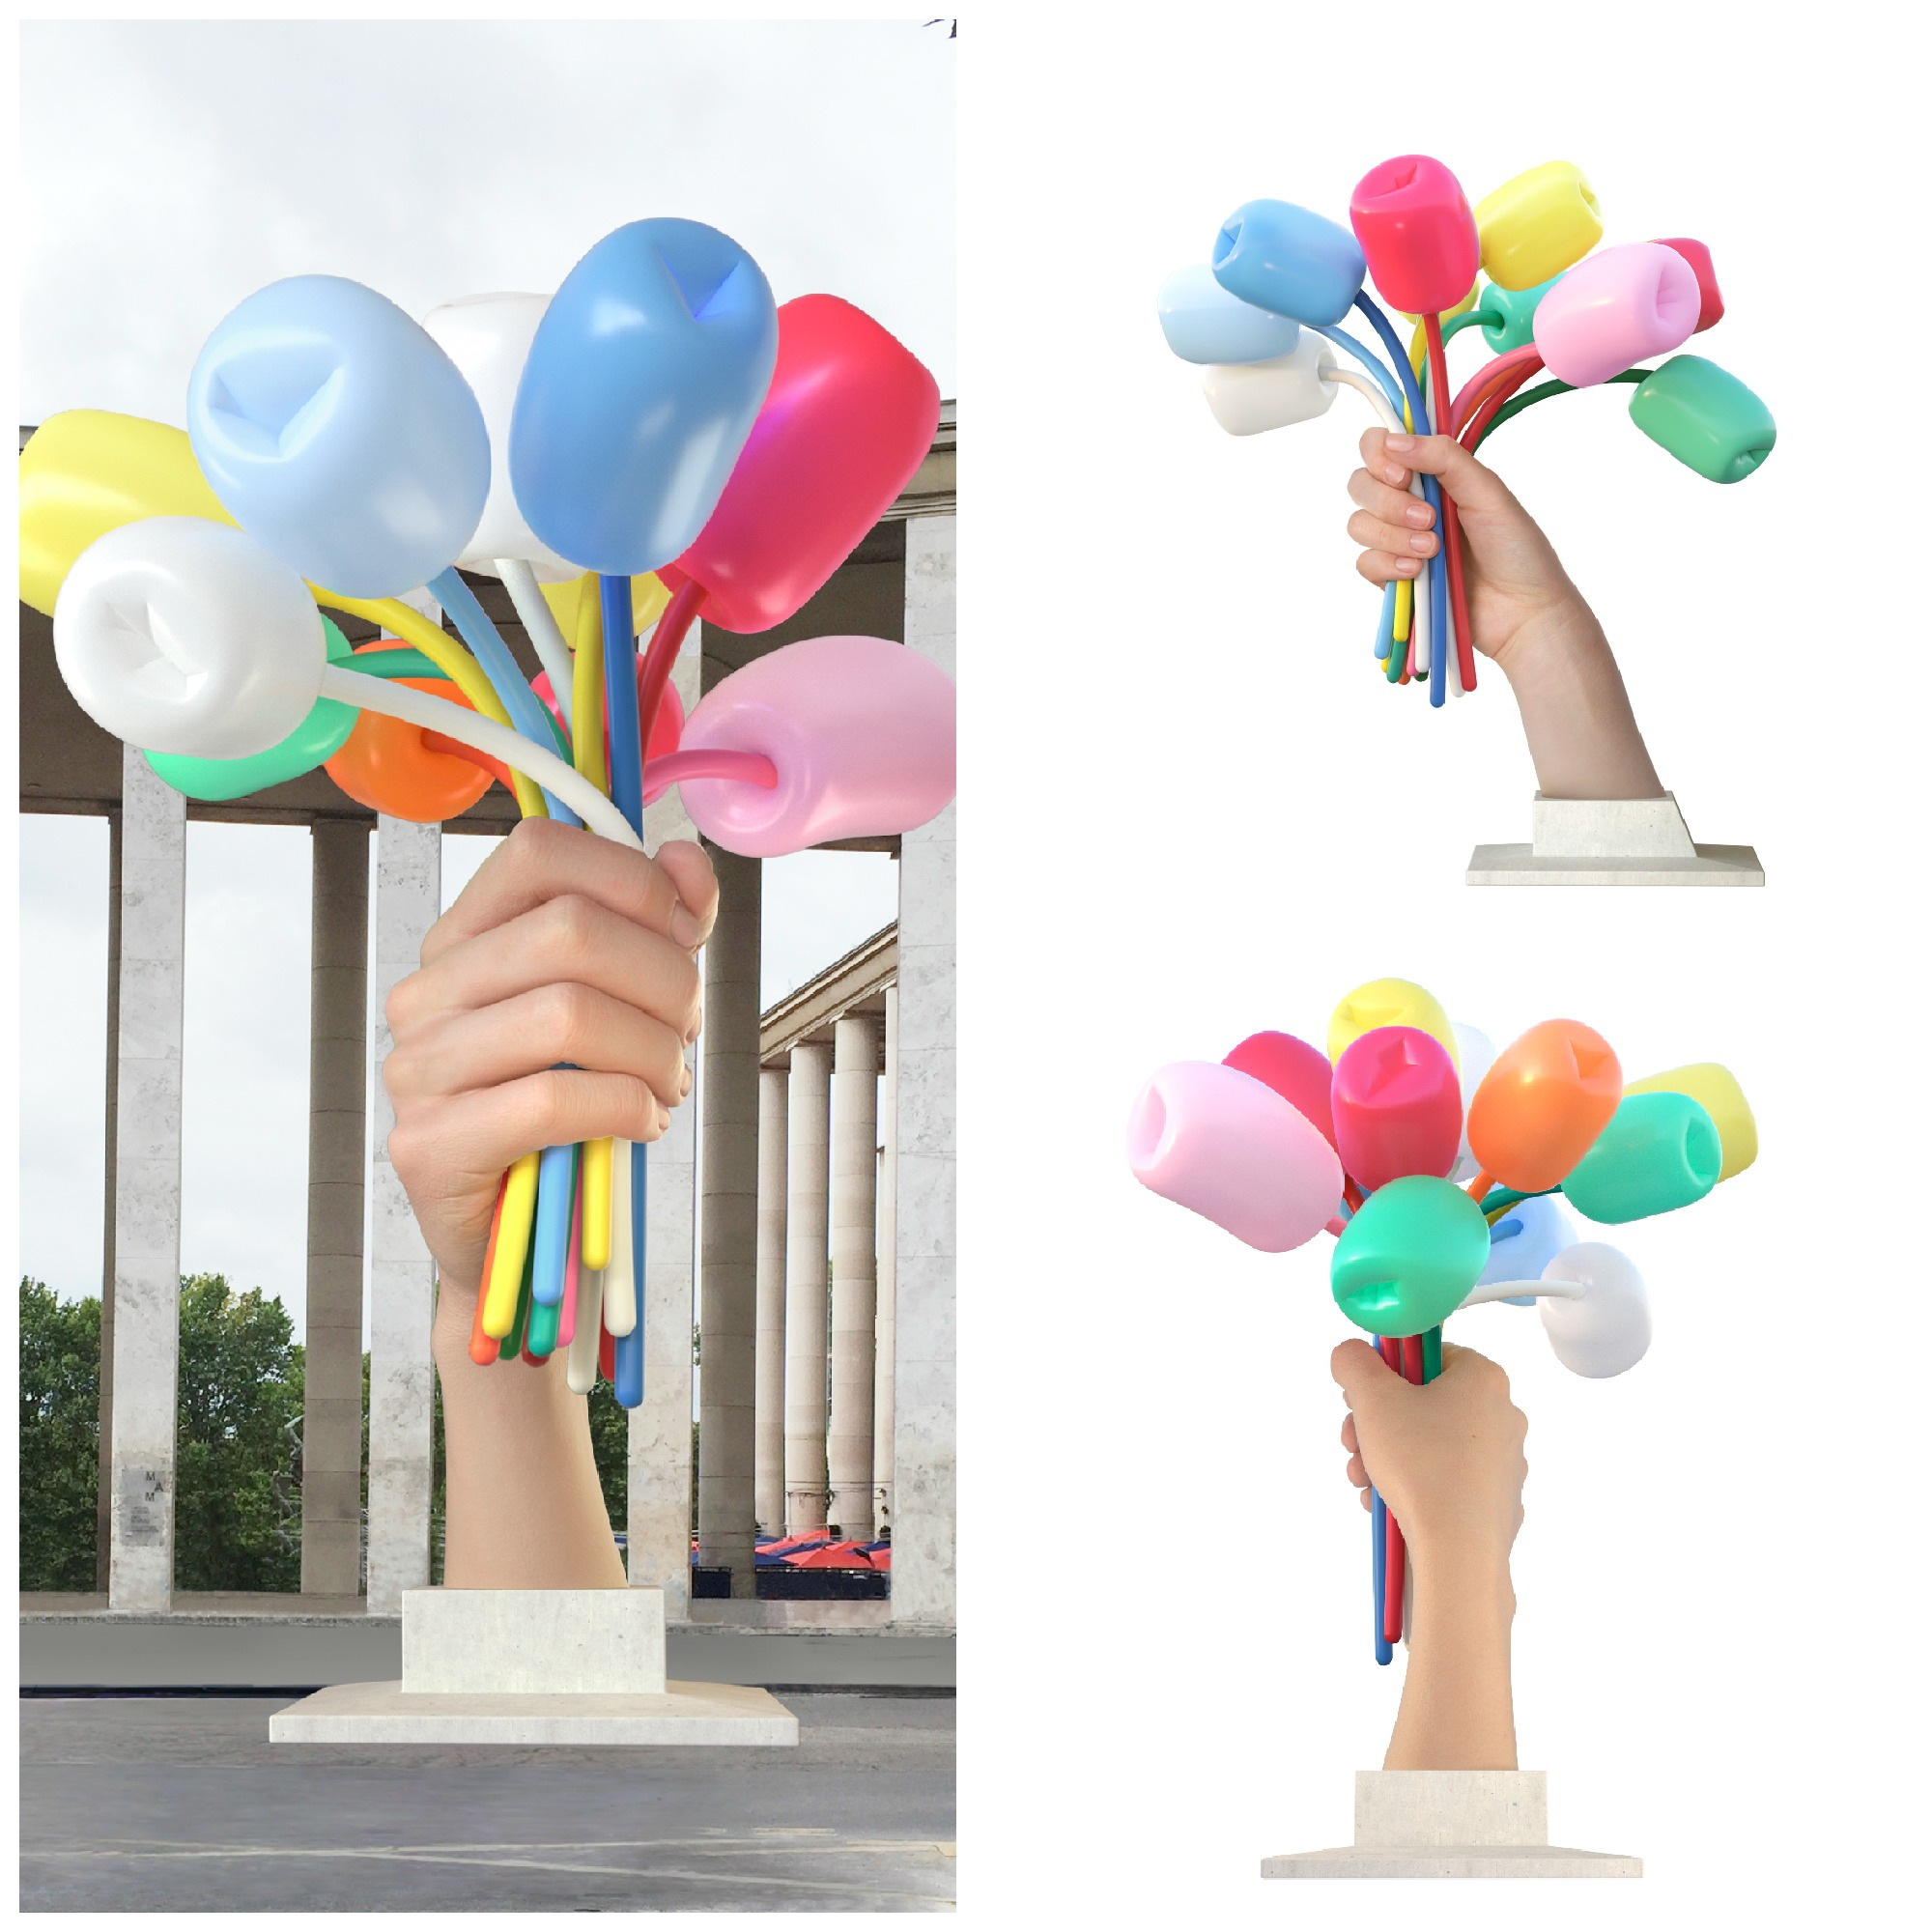 Jeff koons offers sculpture to paris in memory of 2015 attacks for Bouquet internet